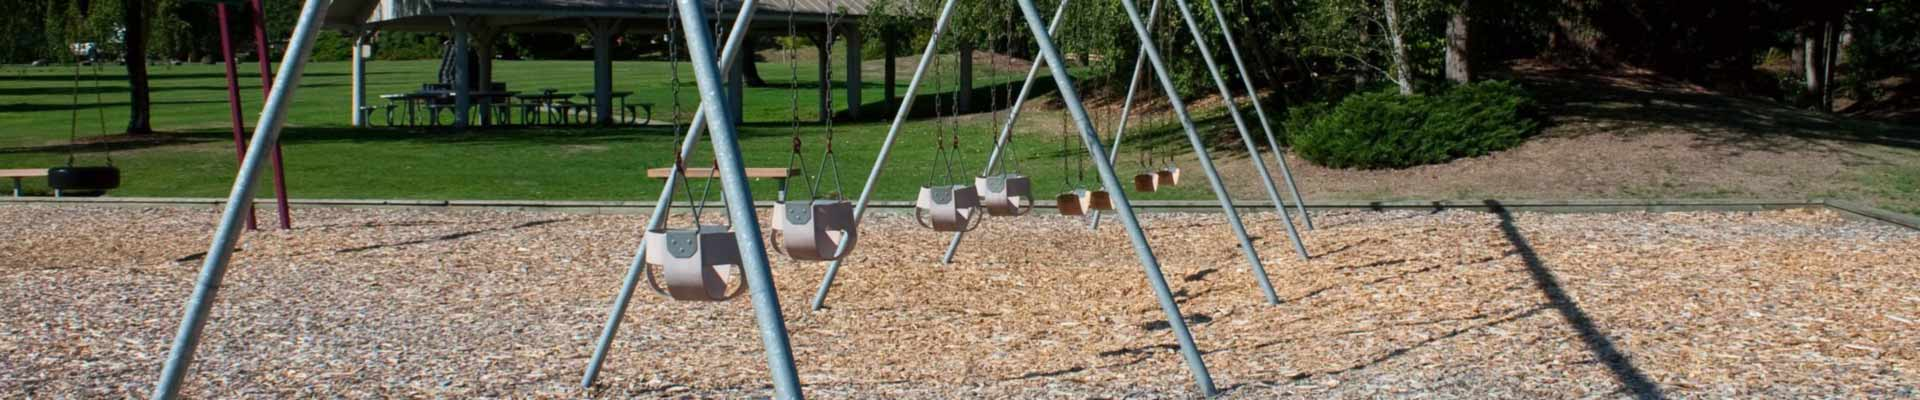 Playground mulch for all Lowcountry playgrounds from All Seasons Mulch